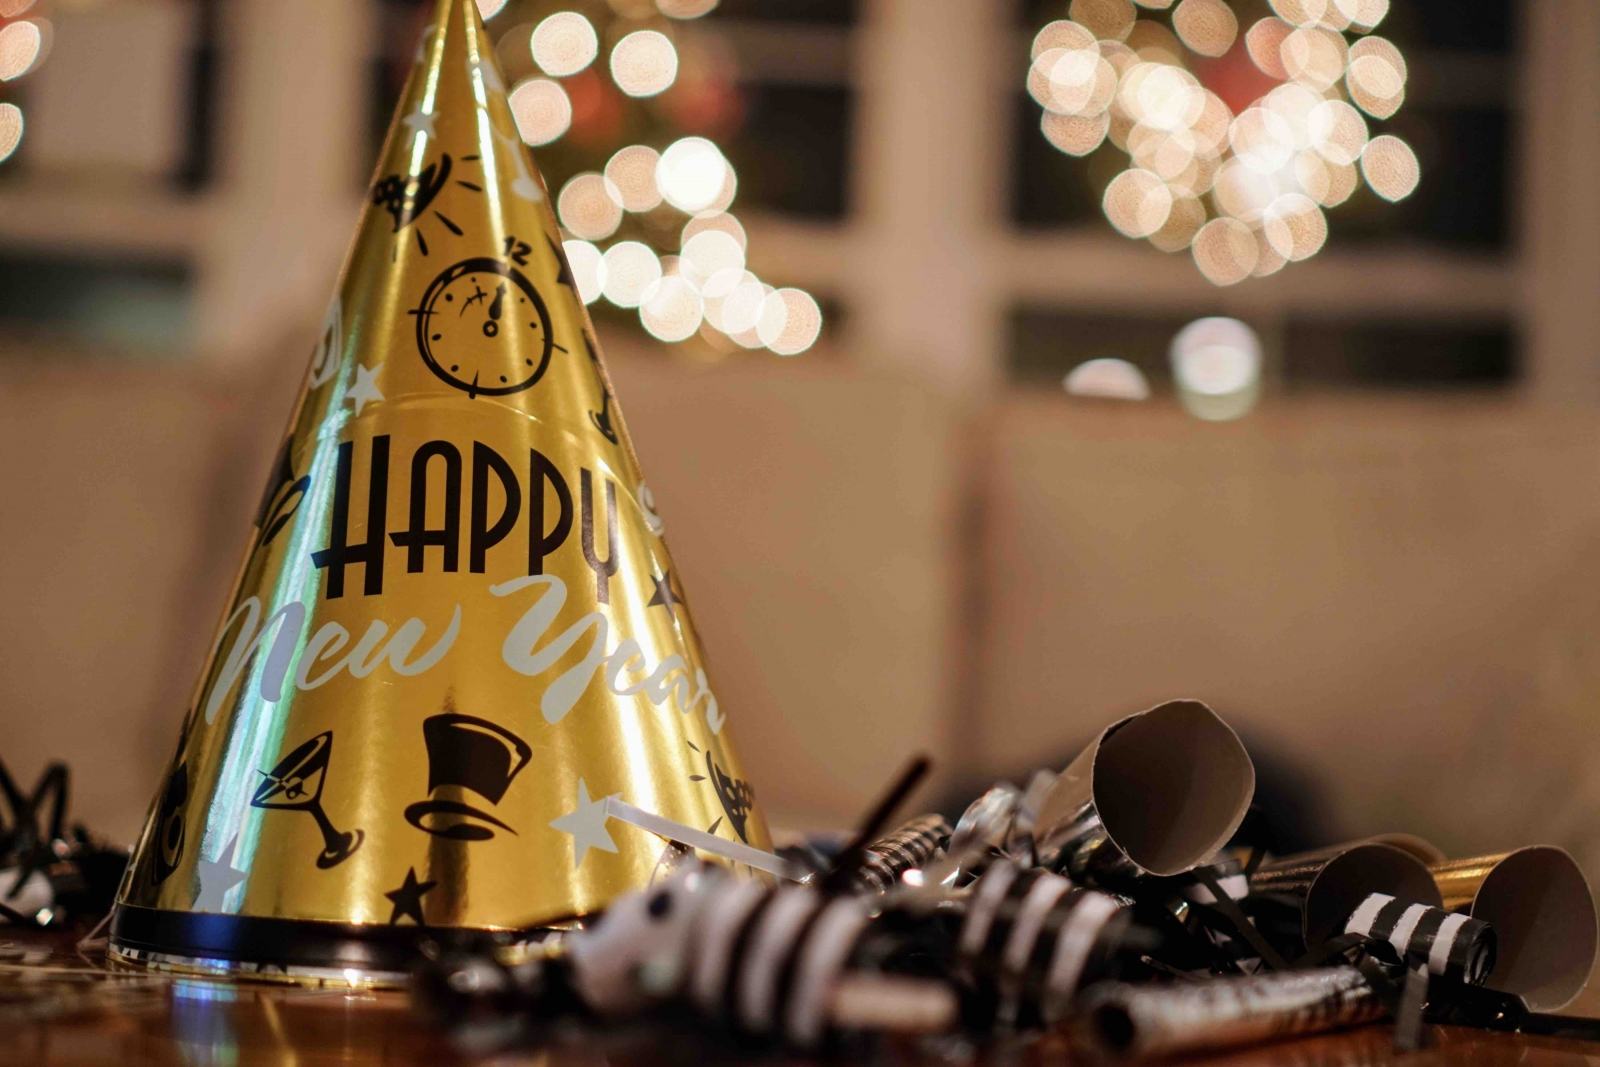 A New Year's Eve party hat with confetti! Photo from Fotolia/Brad.